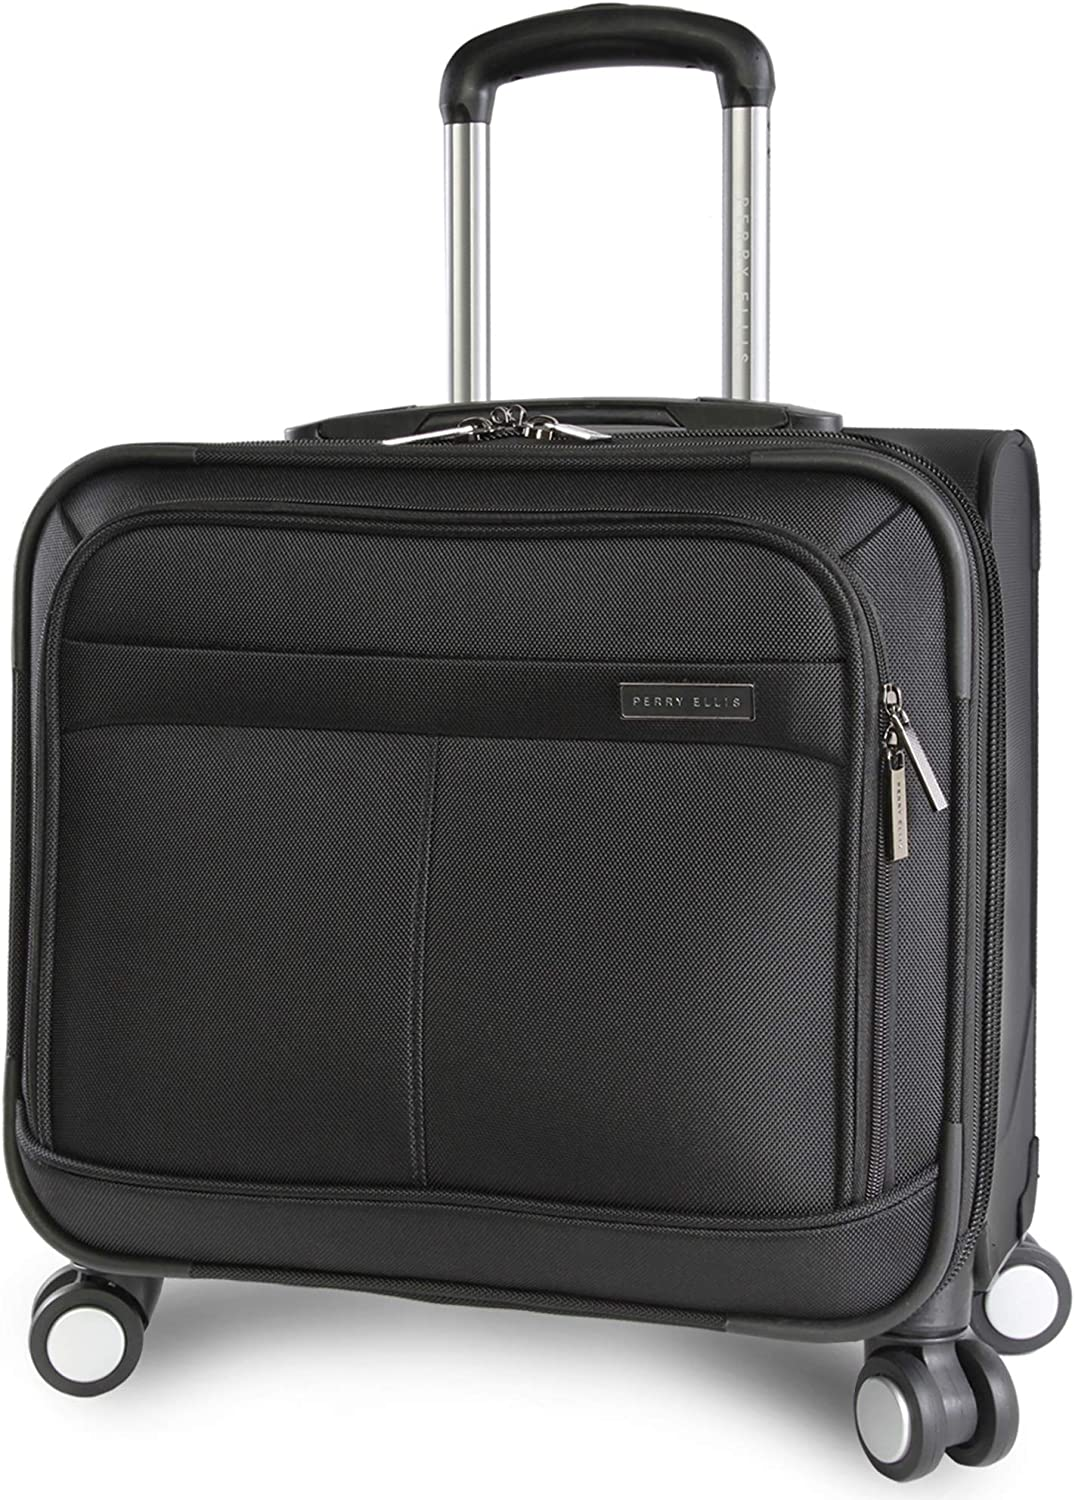 Perry Ellis 8-Wheel Spinner Mobile Office, Black